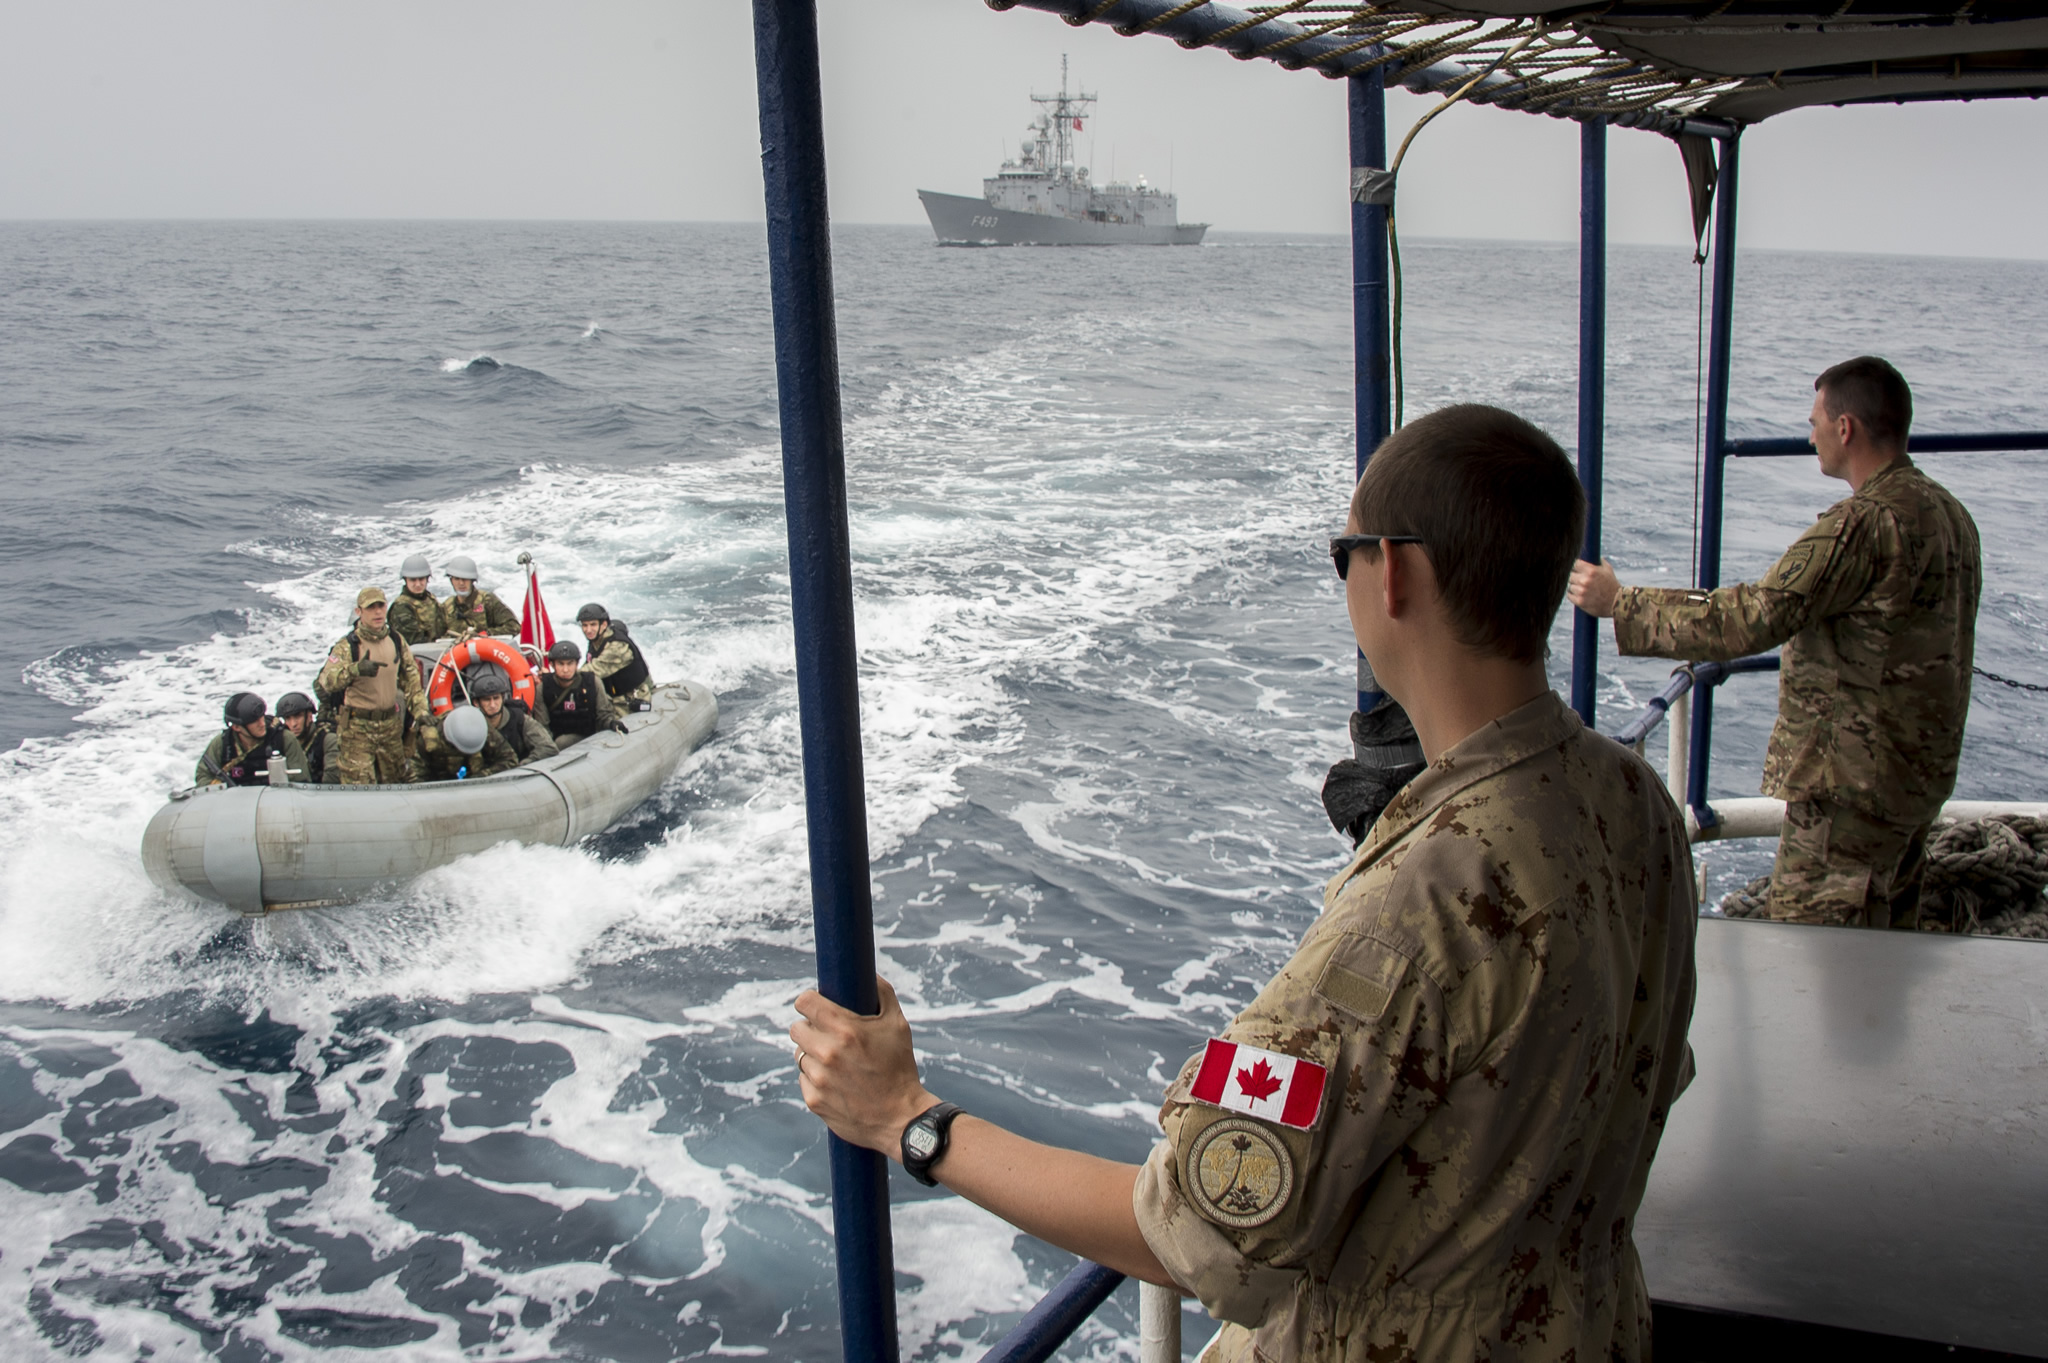 A Canadian military member watches a small speed boat come near the boat he's on